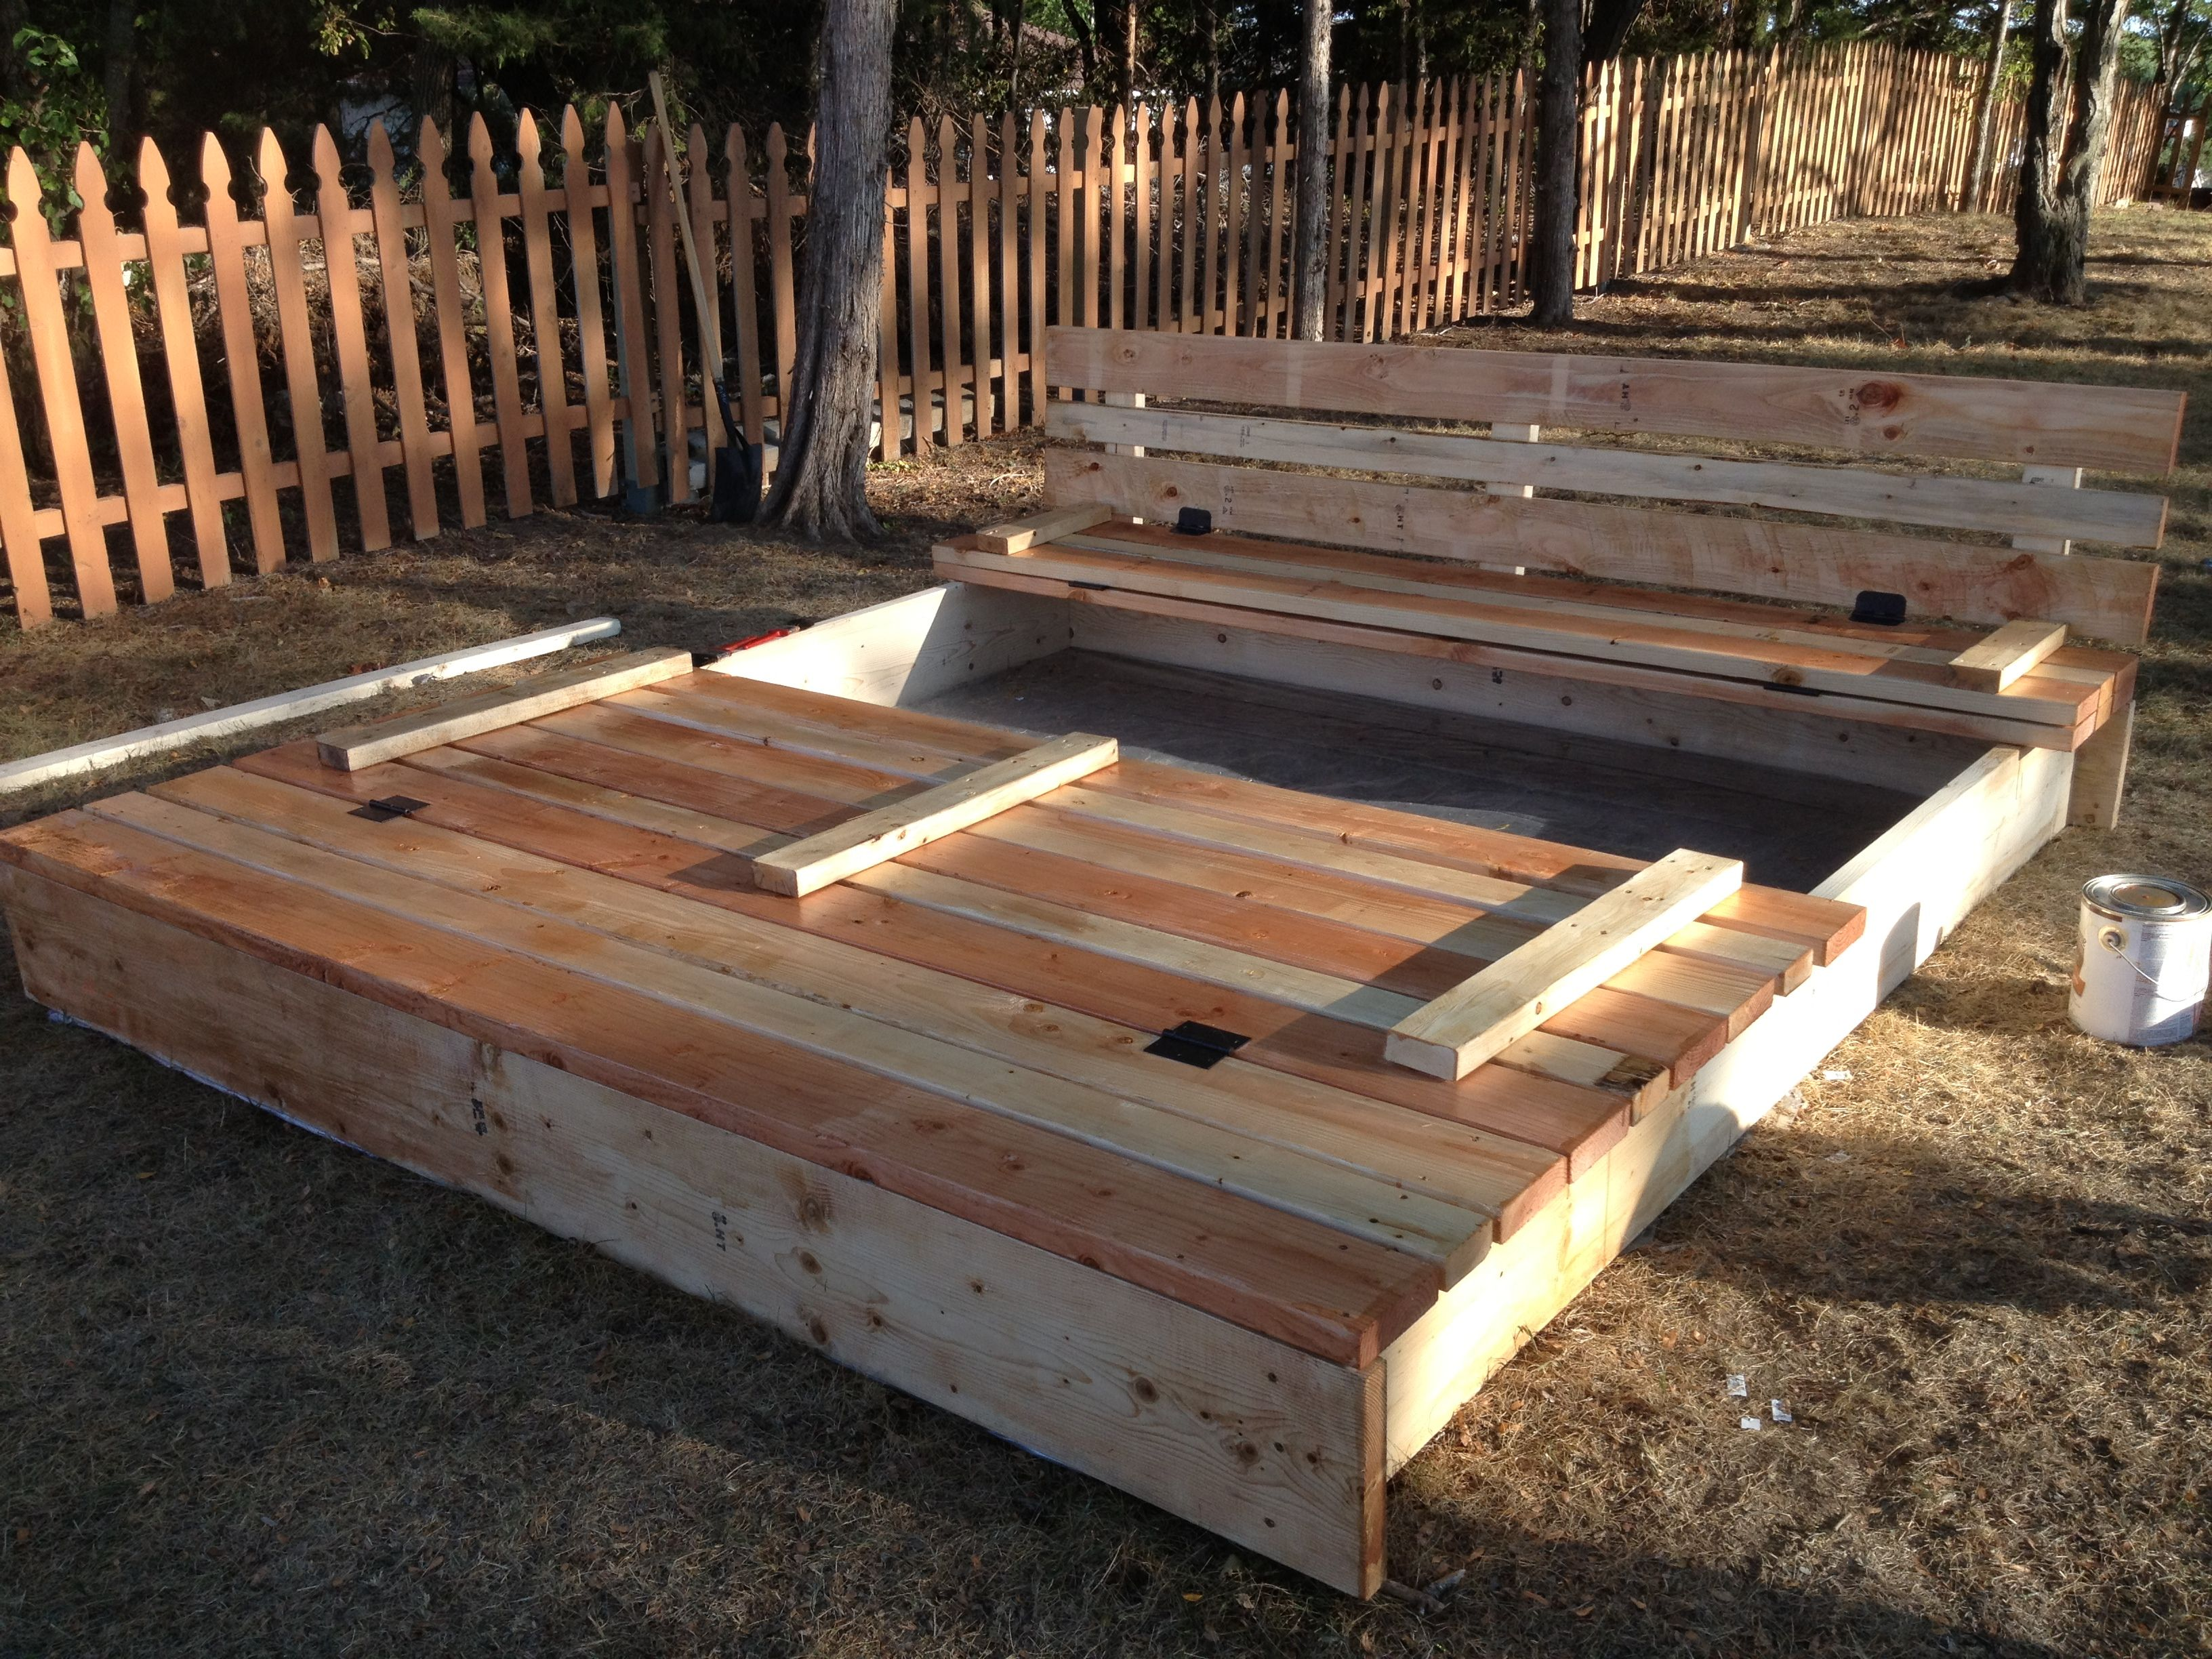 8x8 sandbox with lid that folds up to be benches on either